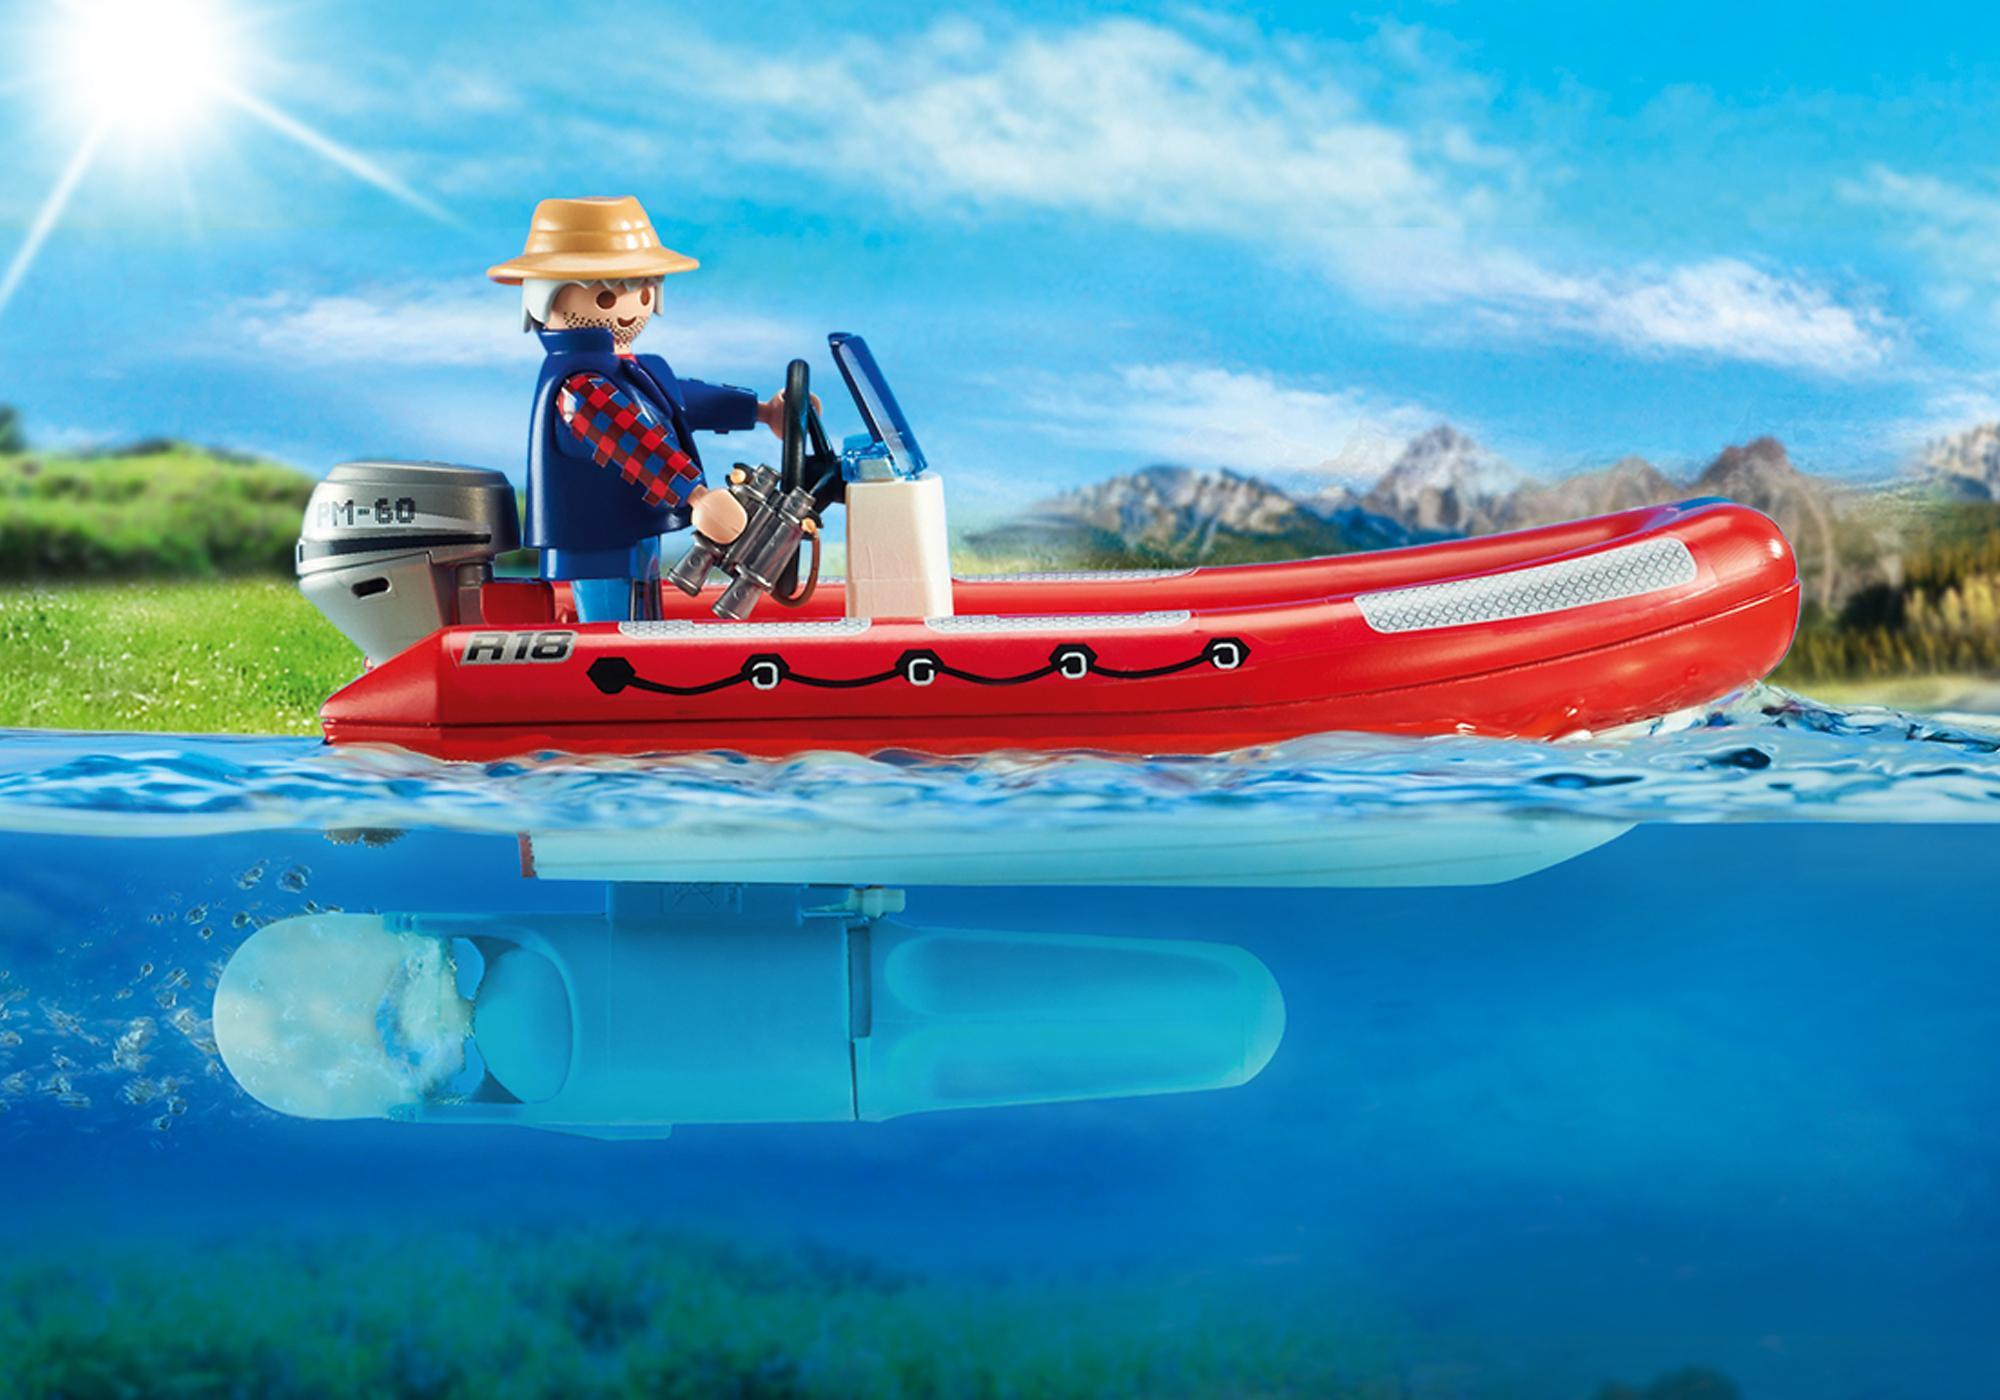 http://media.playmobil.com/i/playmobil/5559_product_extra1/Inflatable Boat with Explorers